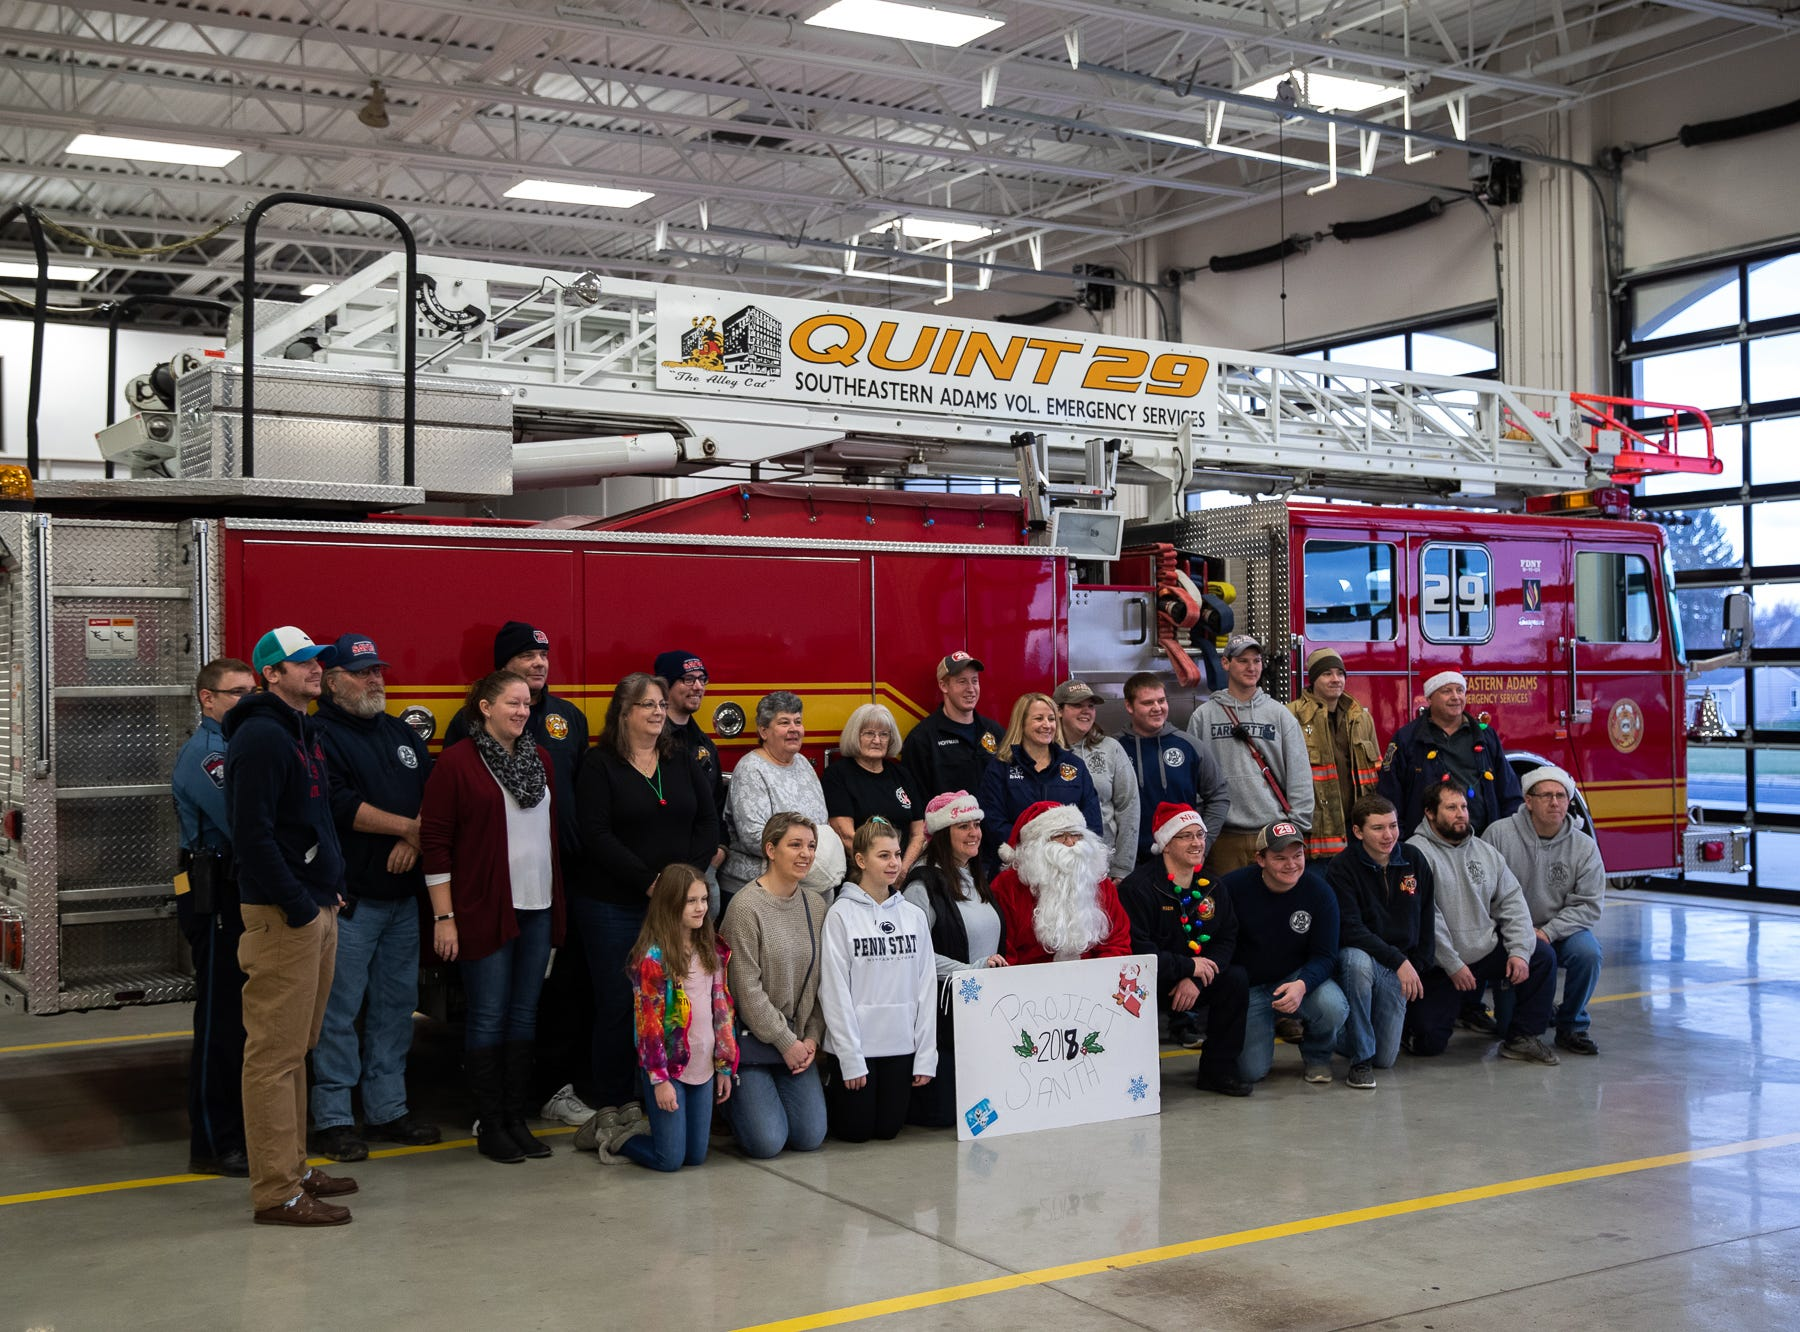 Volunteers pose with Santa, played by firefighter Wayne Reid, at the Southeastern Adams County Volunteer Emergency Services fire station during the S.A.V.E.S Project Santa, Saturday, Dec. 22, 2018, in McSherrystown Borough. The S.A.V.E.S Project Santa donated food, toys, and clothing to 12 local families in need.